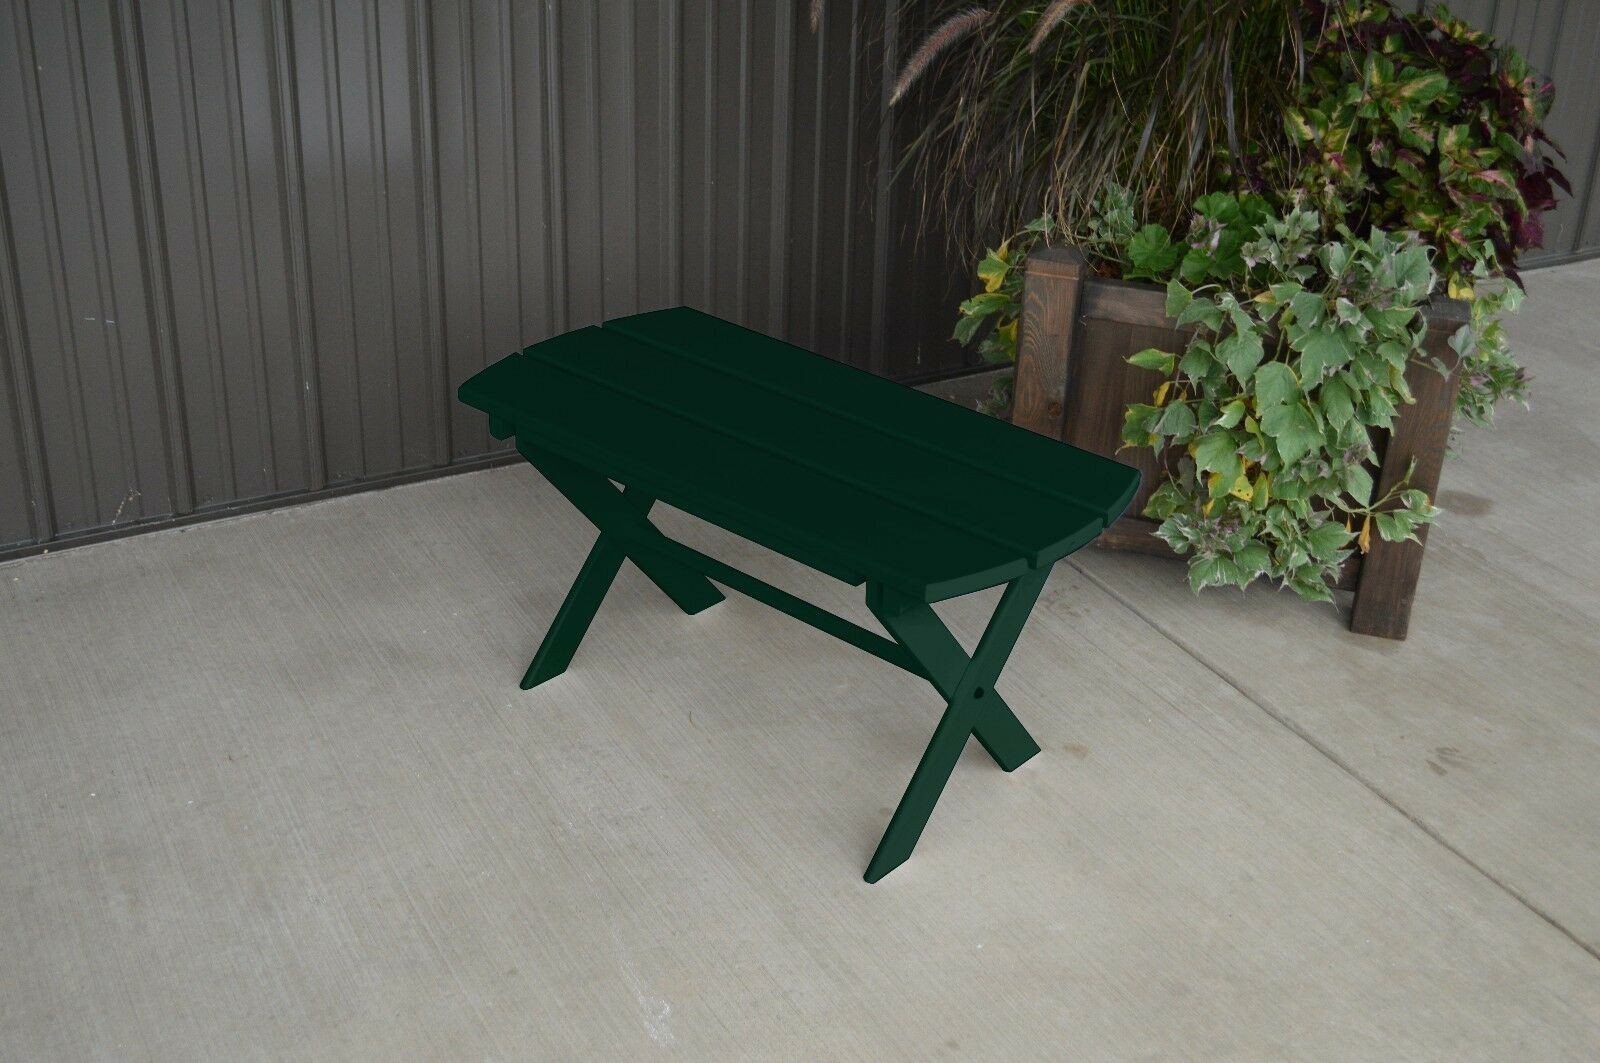 Pine Outdoor Table